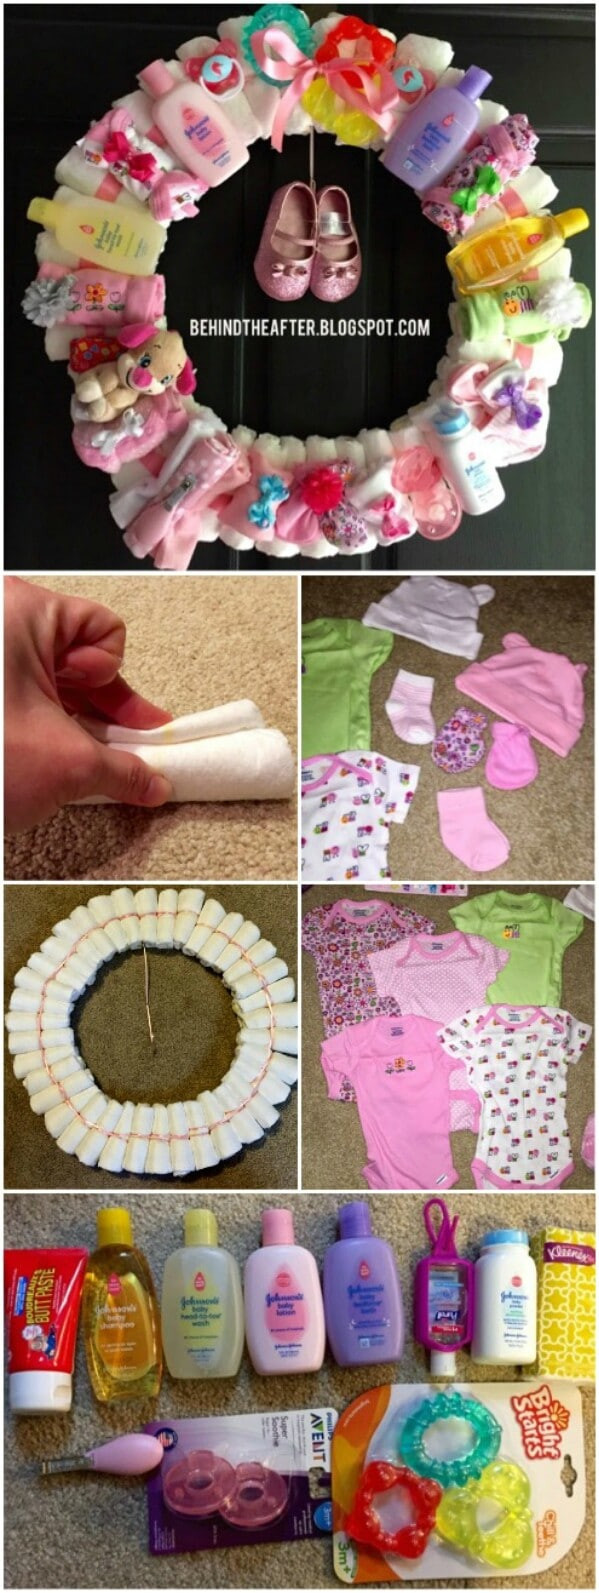 Awesome Baby Gift Ideas  25 Enchantingly Adorable Baby Shower Gift Ideas That Will